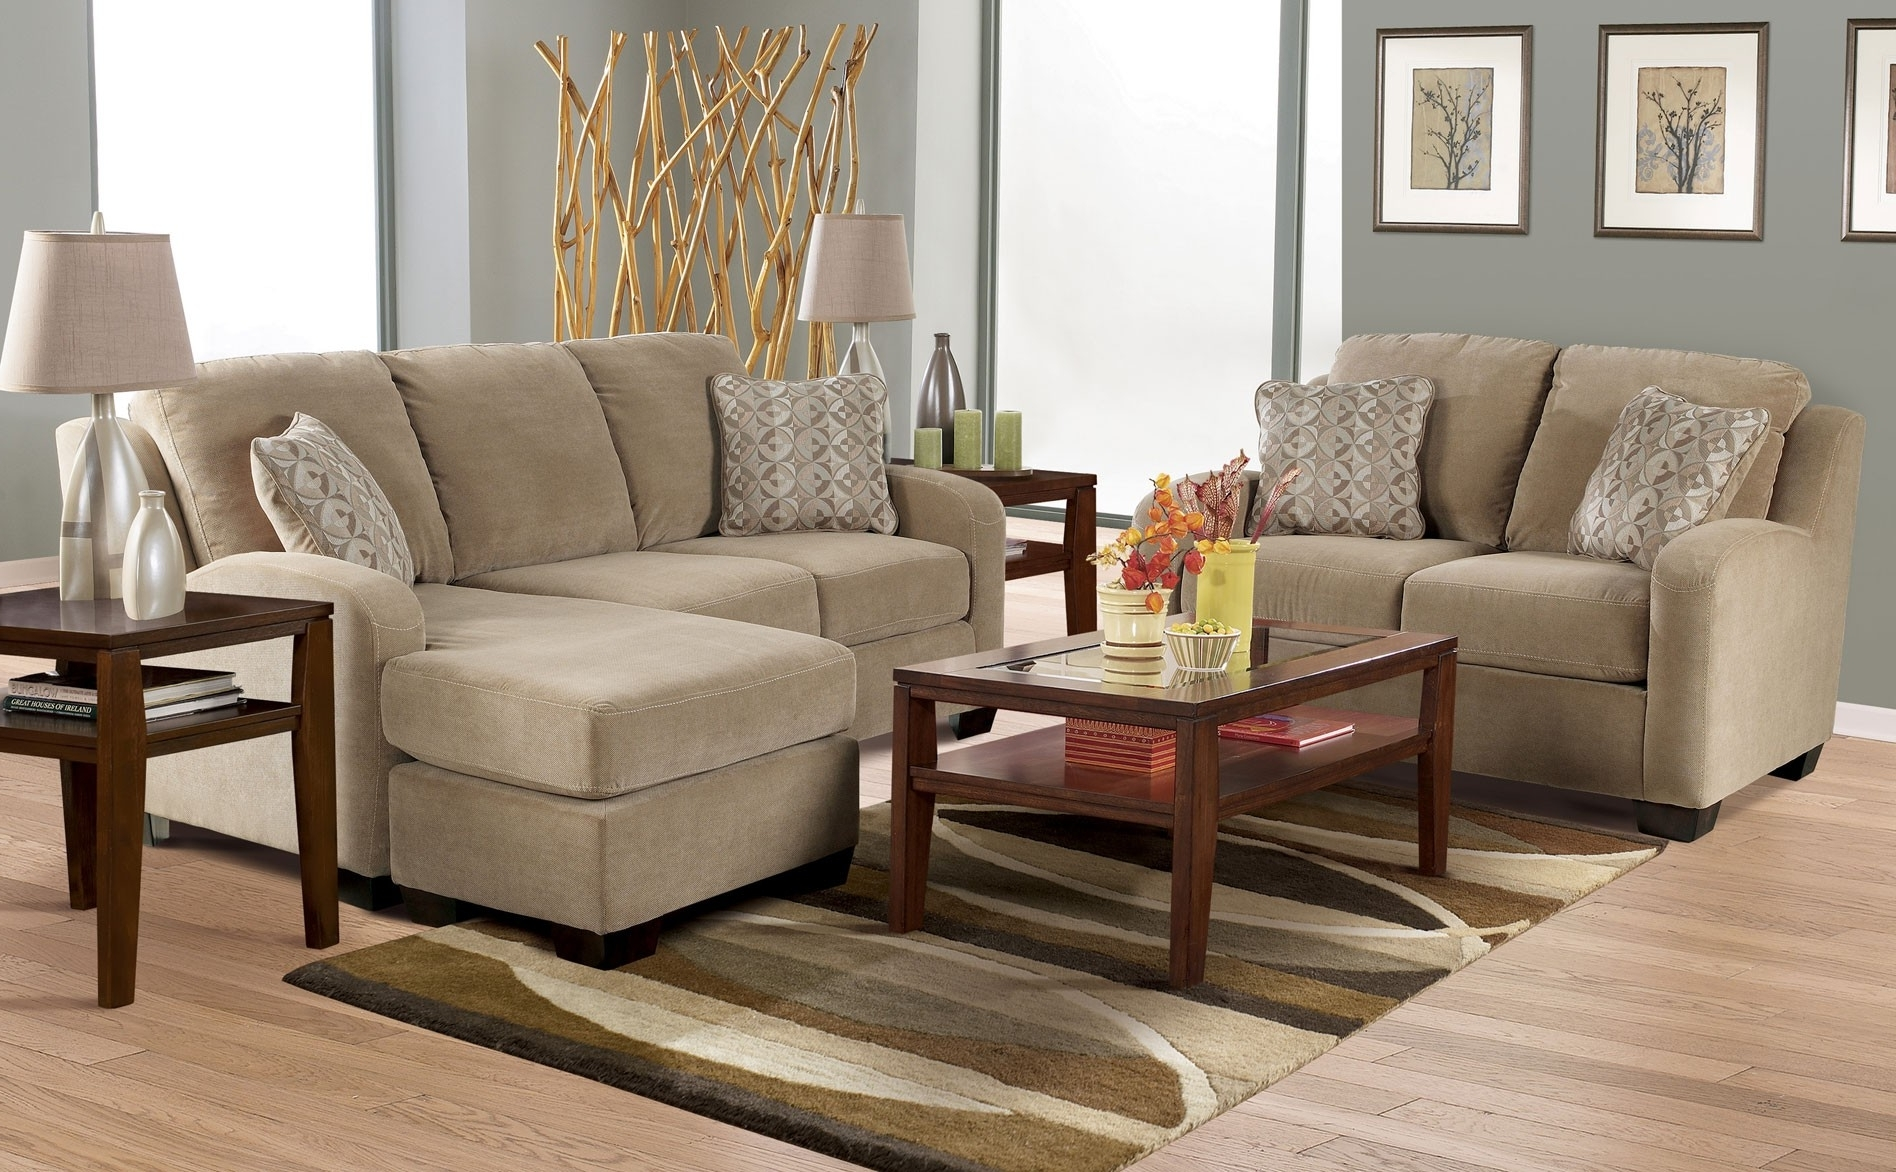 Favorite Heavenly Ashley Furniture Sofa Chaise Painting Or Other Backyard Pertaining To Sofa Loveseat And Chaise Sets (View 5 of 15)